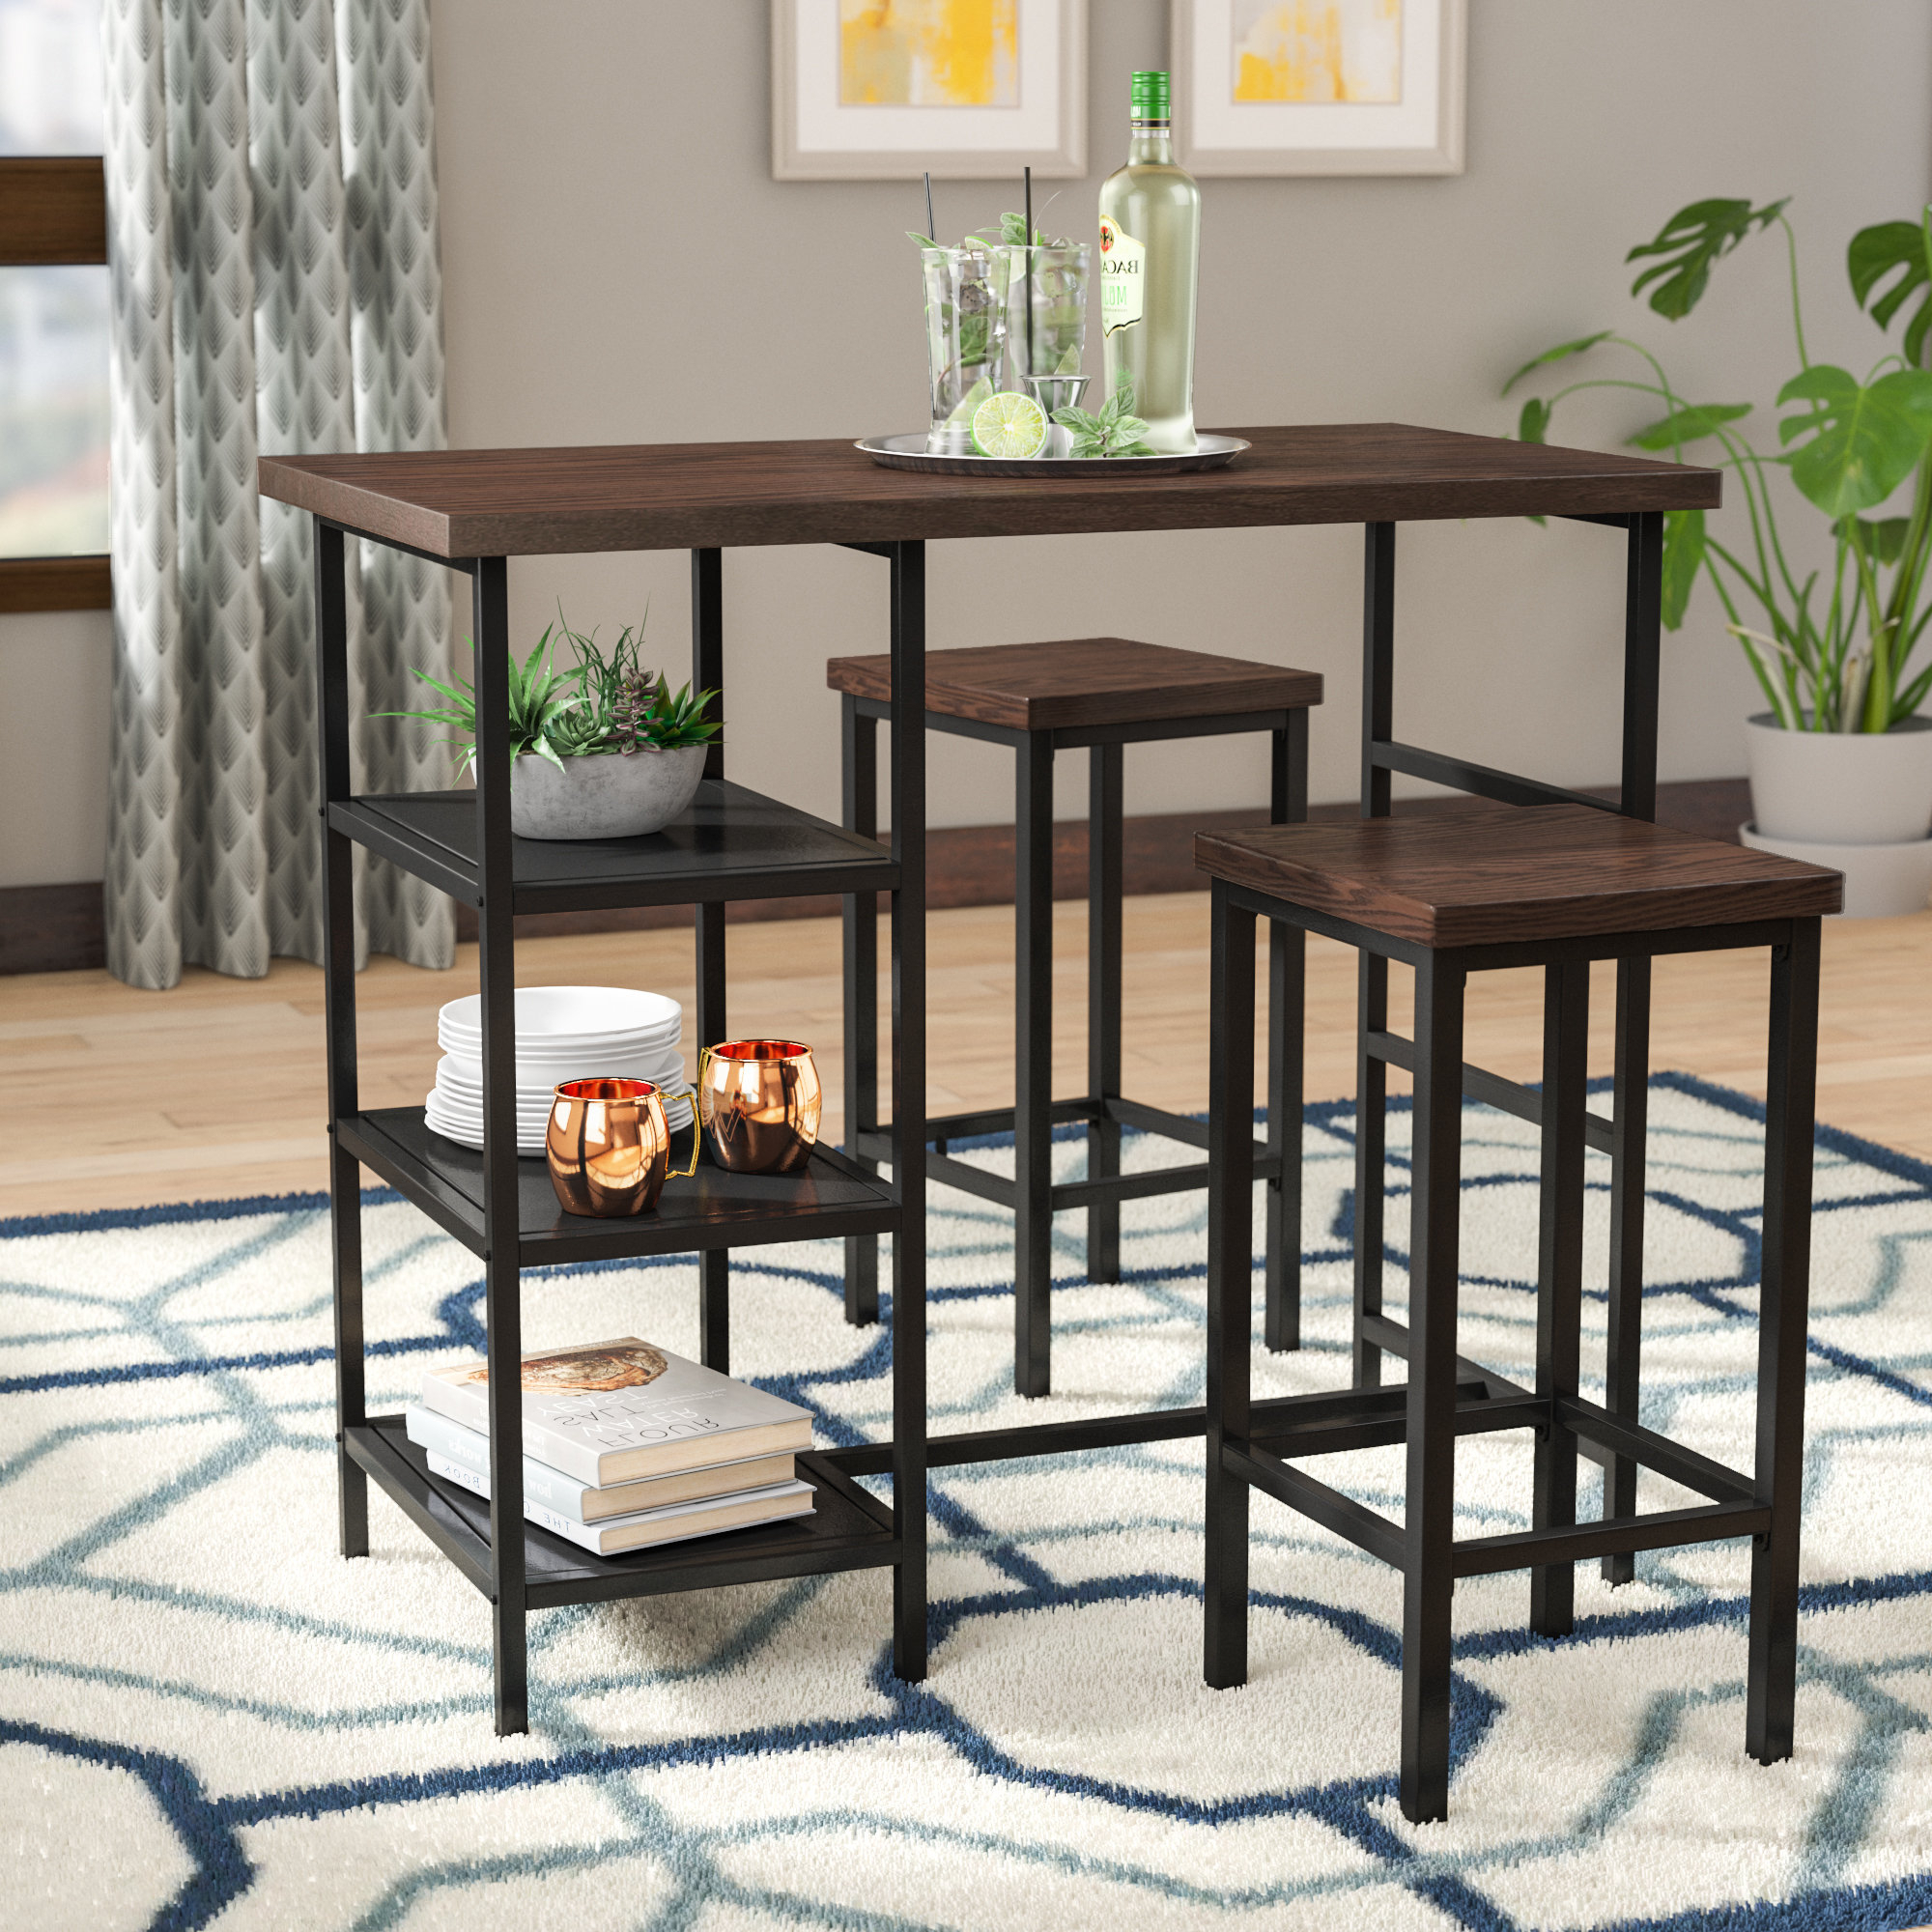 Maloney 3 Piece Breakfast Nook Dining Sets Pertaining To Well Known Ivy Bronx Du Bois 3 Piece Pub Table Set & Reviews (View 8 of 25)